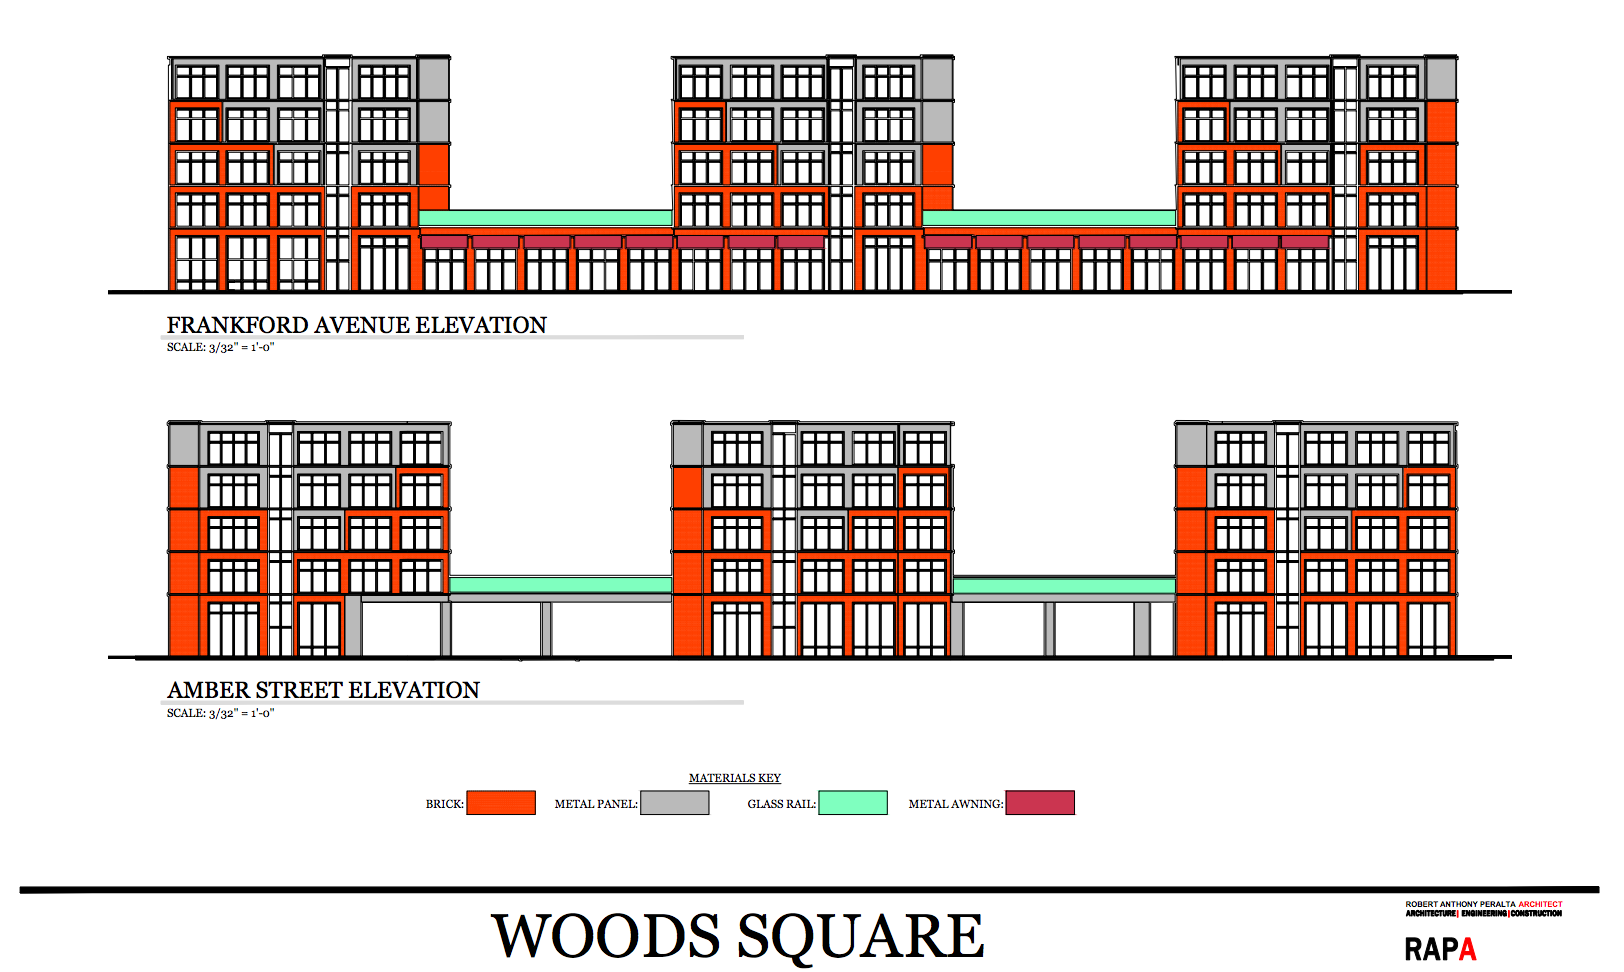 Woods Square: Frankford and Amber Street elevations | RAPA, July 2016 CDR presentation